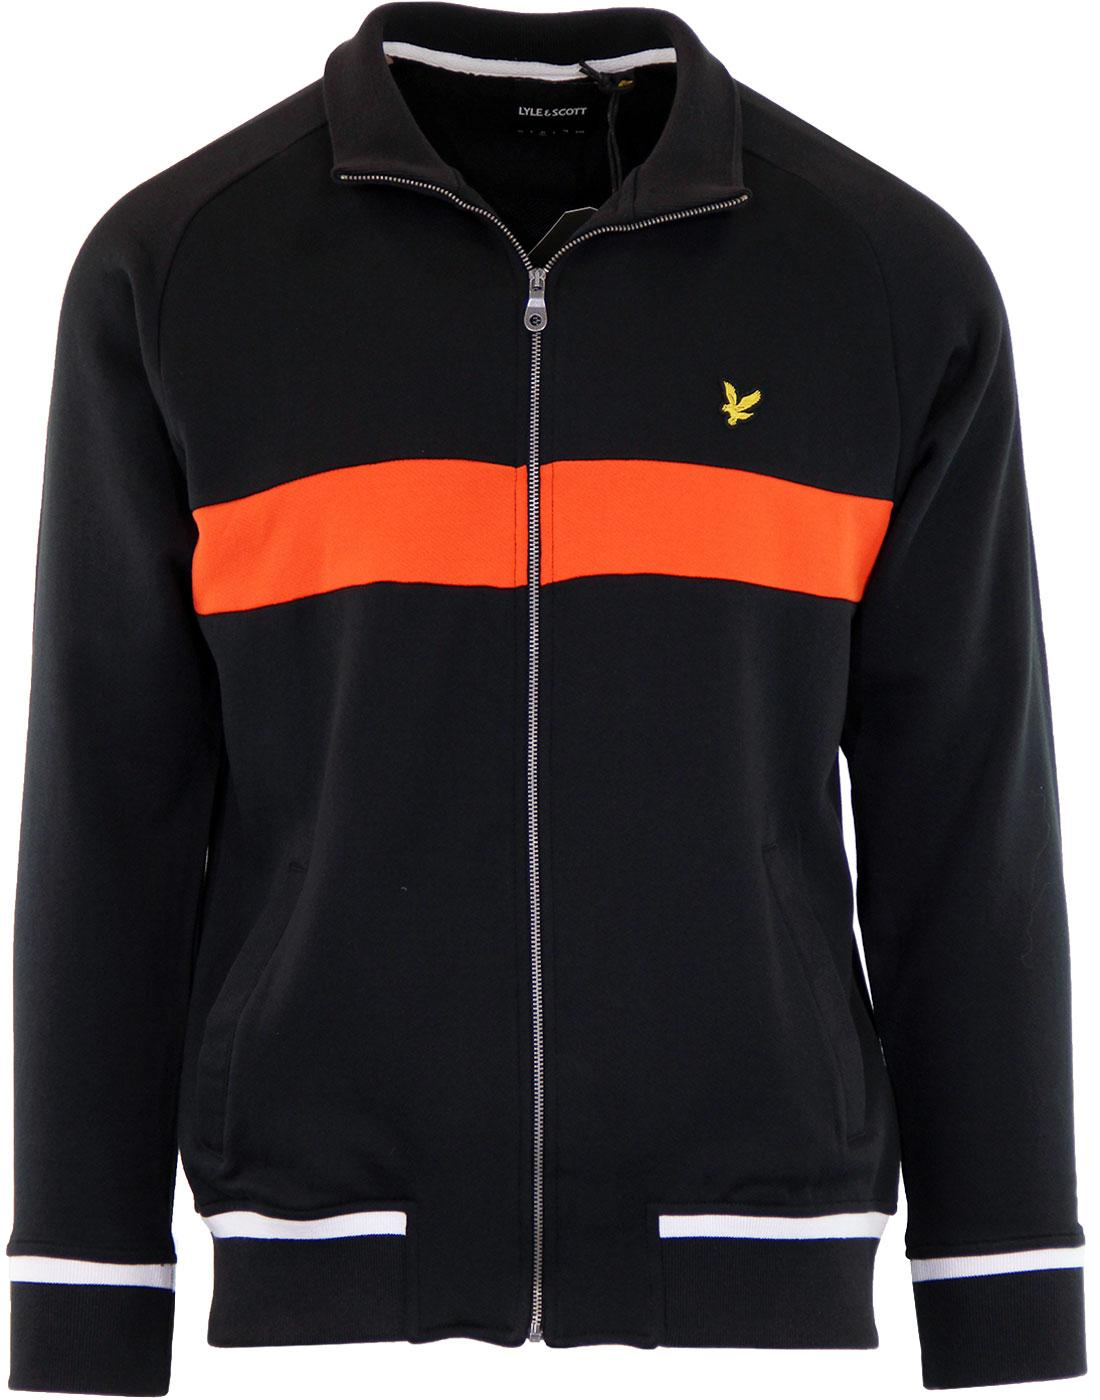 LYLE & SCOTT Retro 80's Chest Panel Track Jacket B